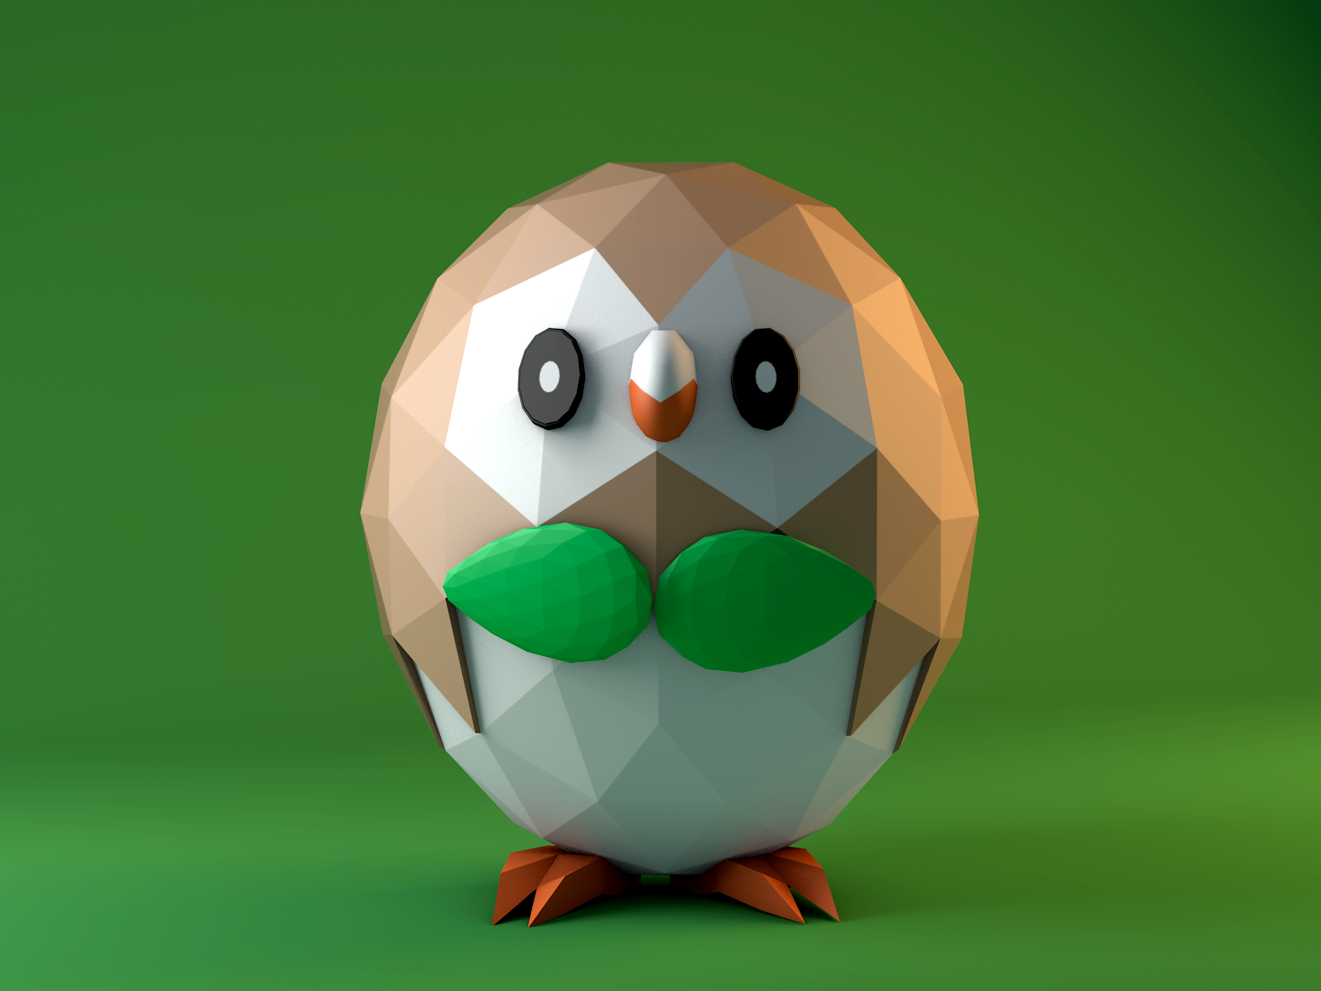 Rowlet (Pokémon) by Henrique Rocharca on Dribbble